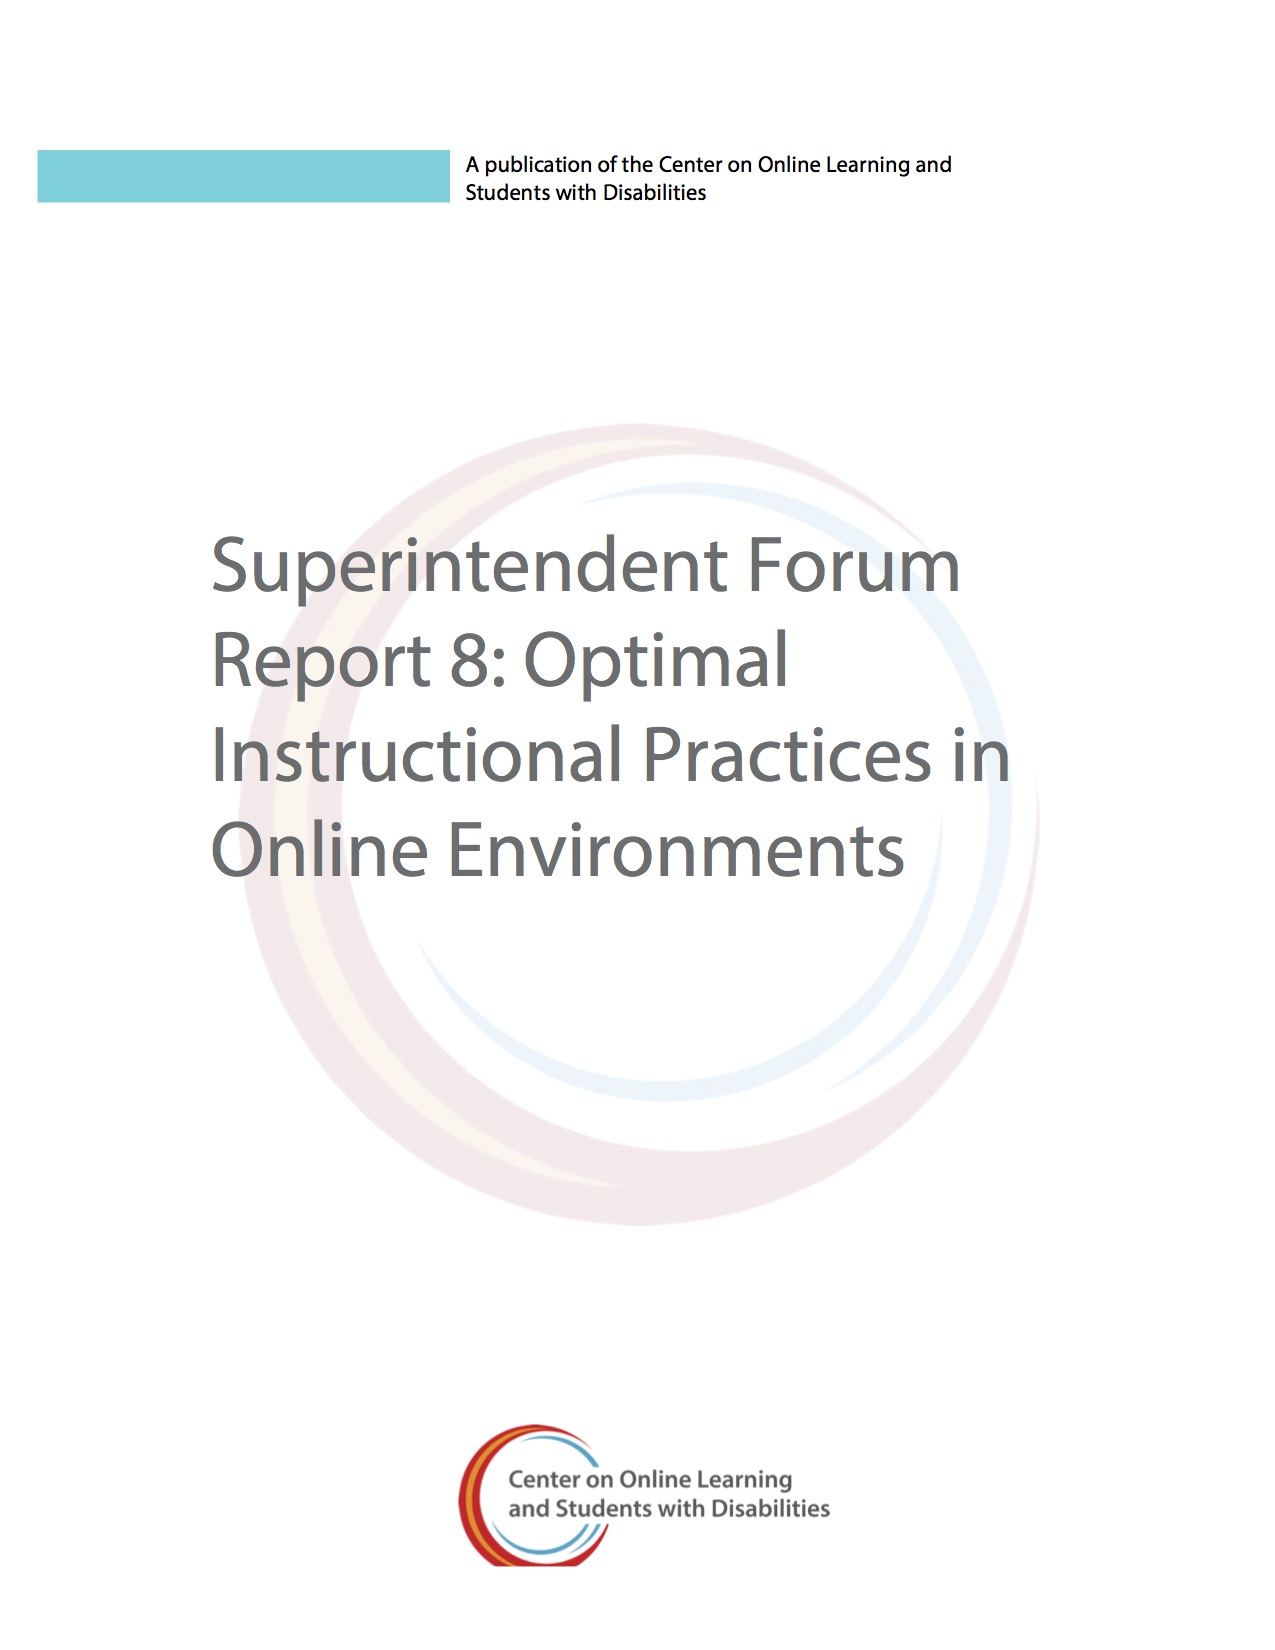 Superintendent Forum Report 8: Optimal Instructional Practices In Online Environments